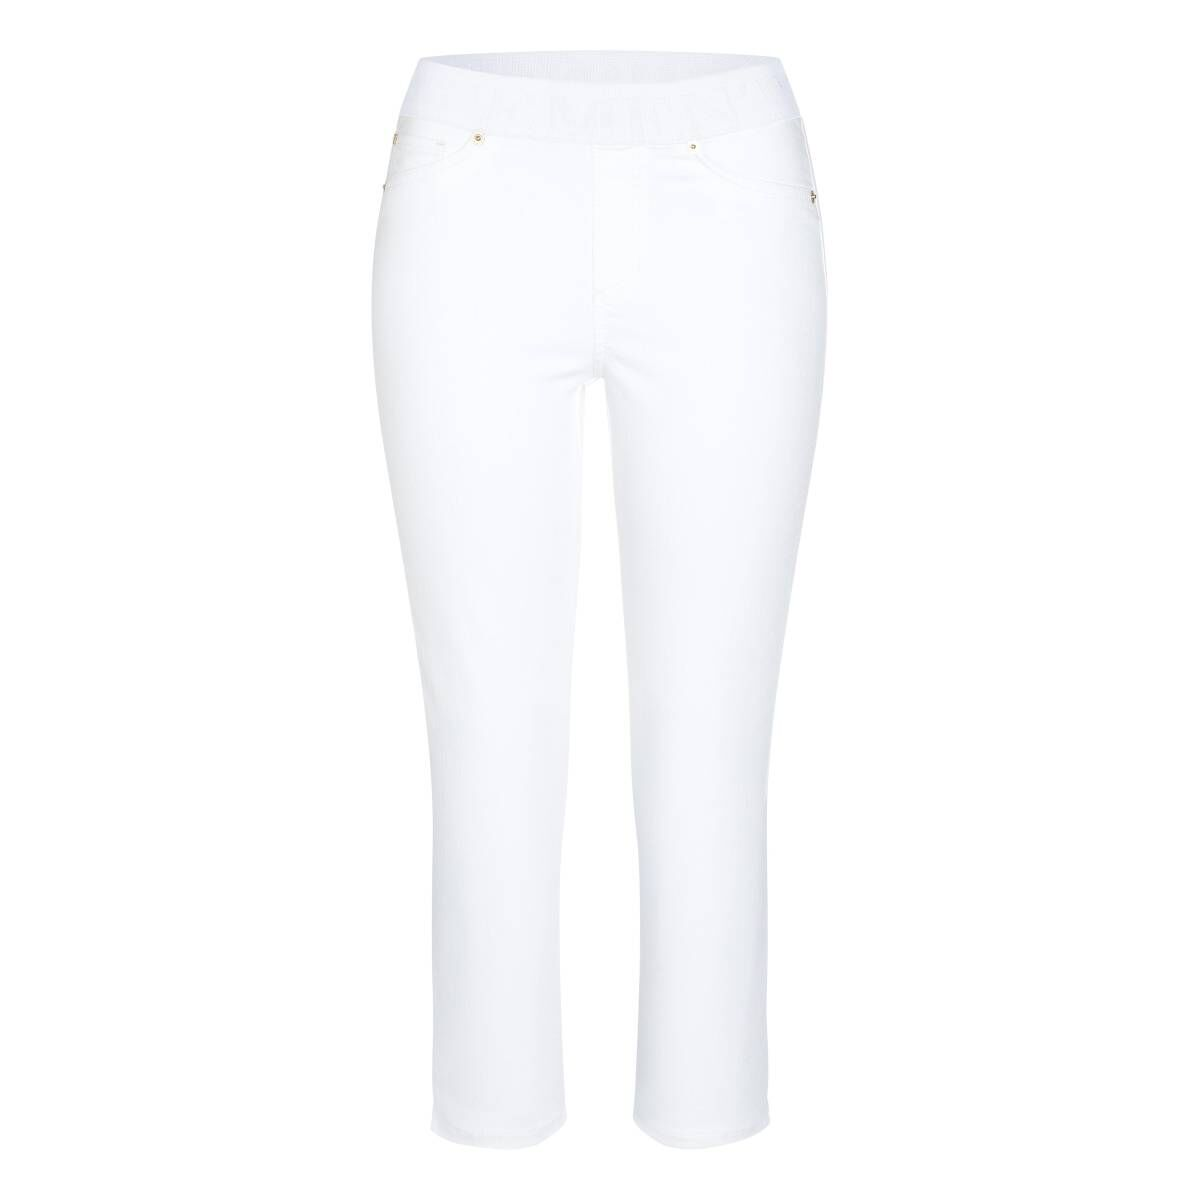 Cambio trousers PHILIA CAPRI 9048-0005-02 White by Penninkhoffashion.com